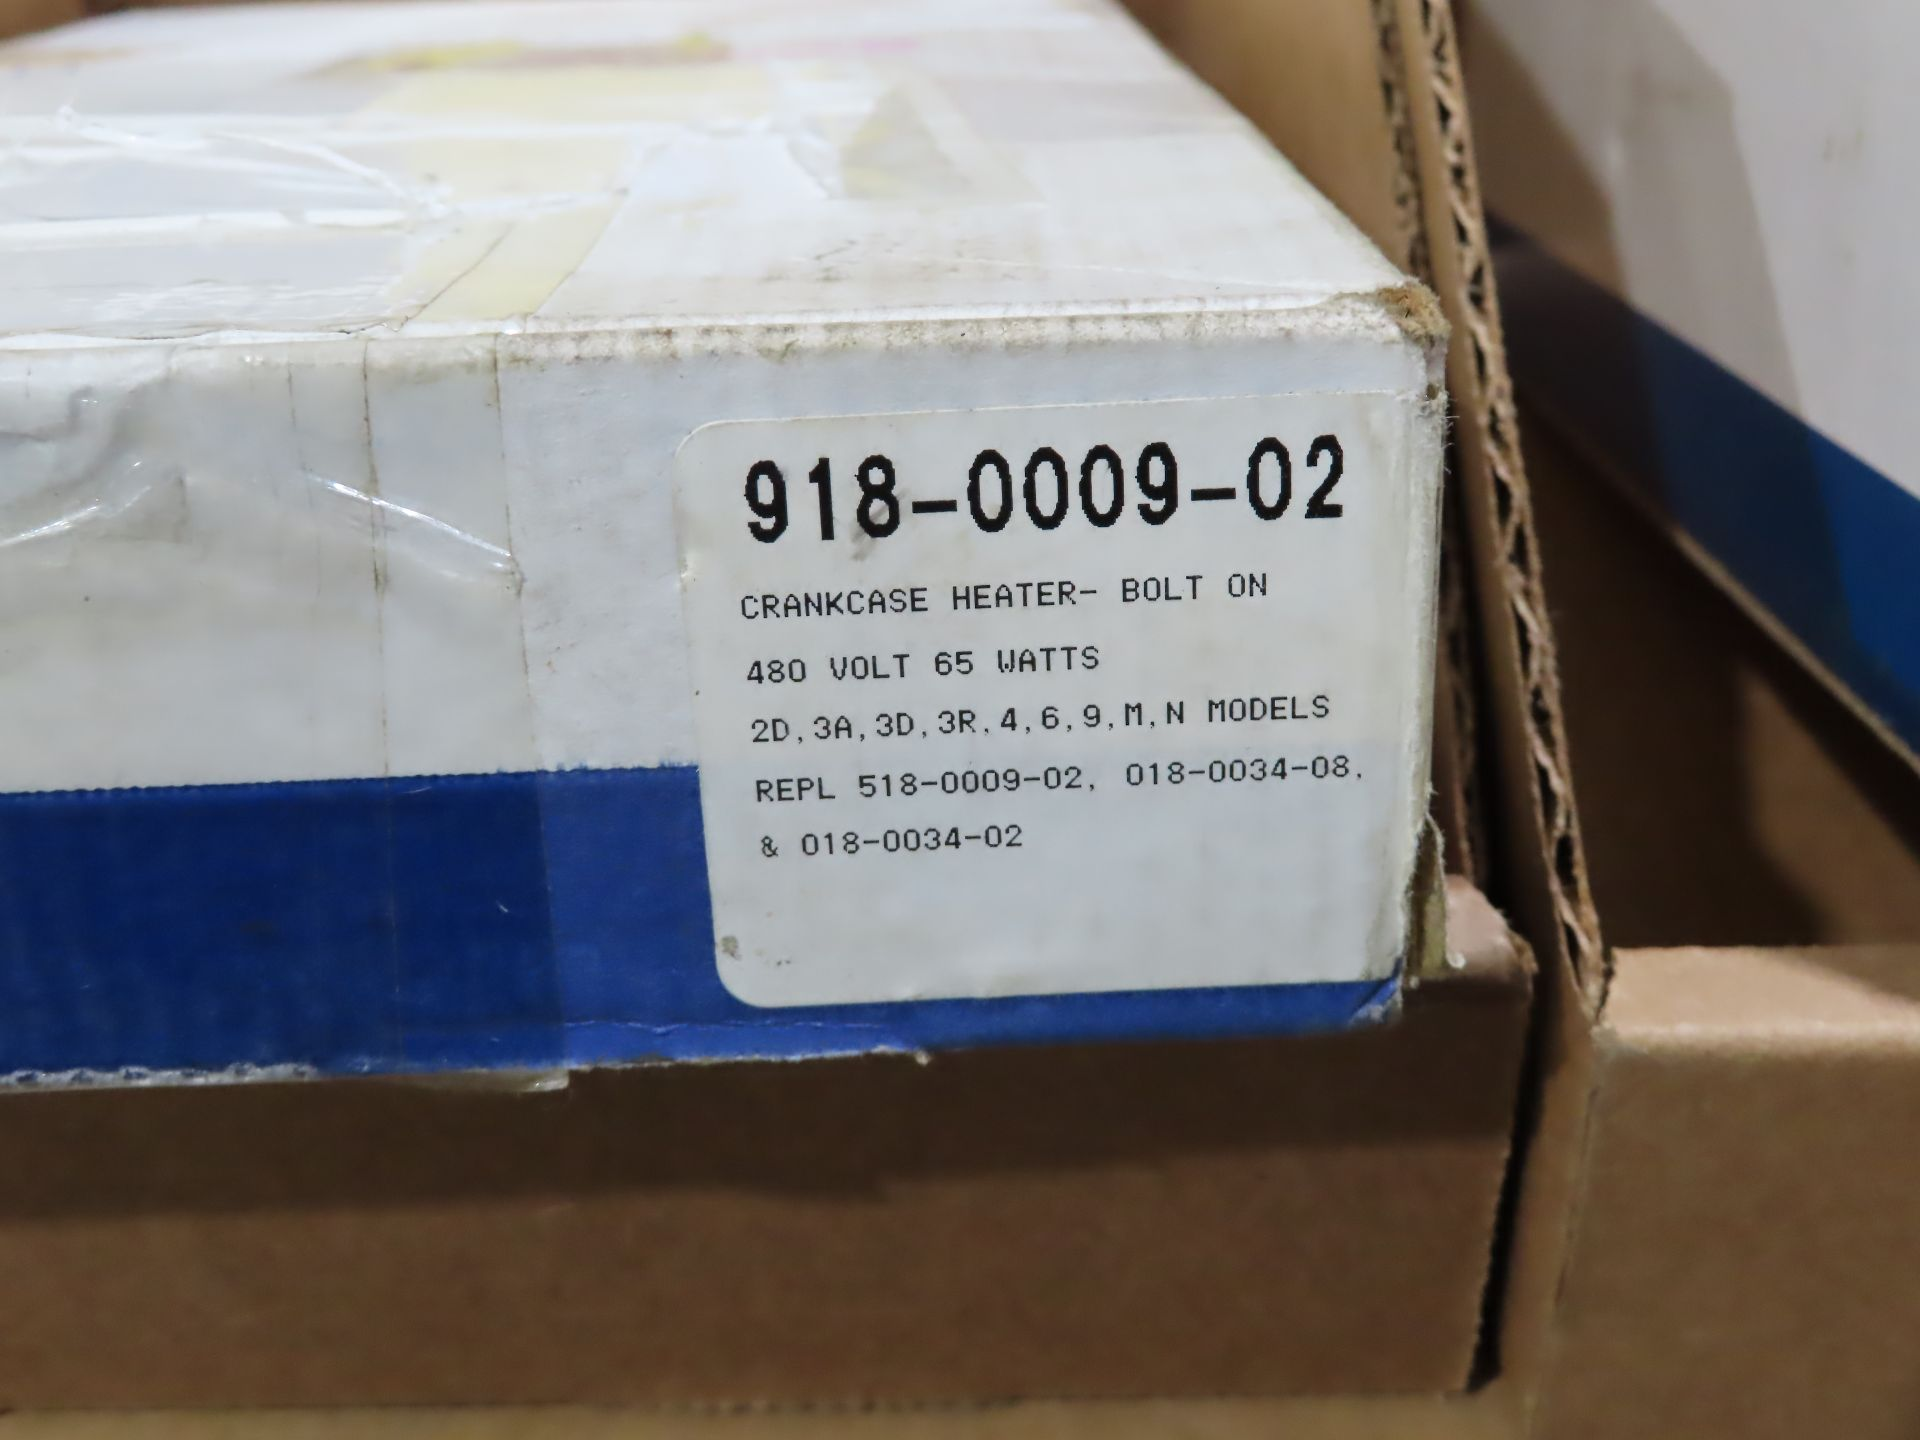 Lot 22 - Emerson model 918-0009-02, new in box, as always, with Brolyn LLC auctions, all lots can be picked